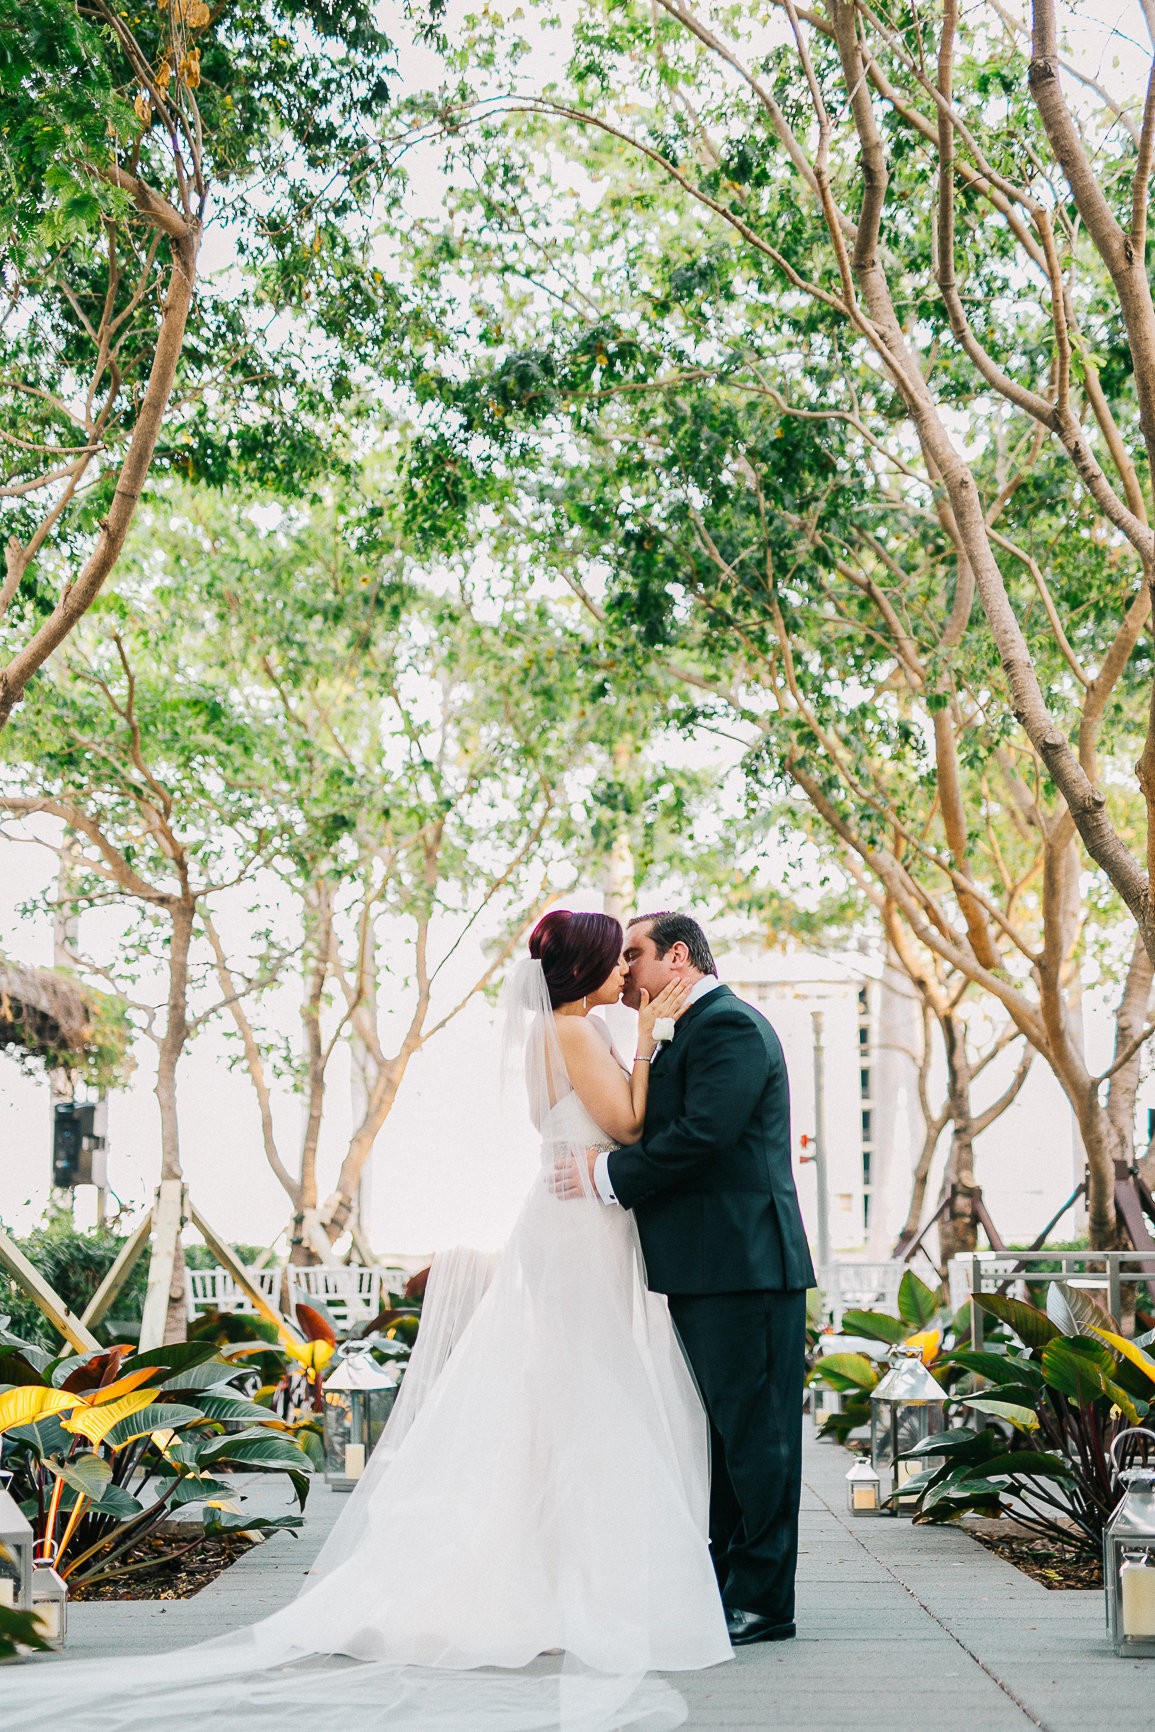 WEDDINGPHOTOGRAPHERMIAMI-234